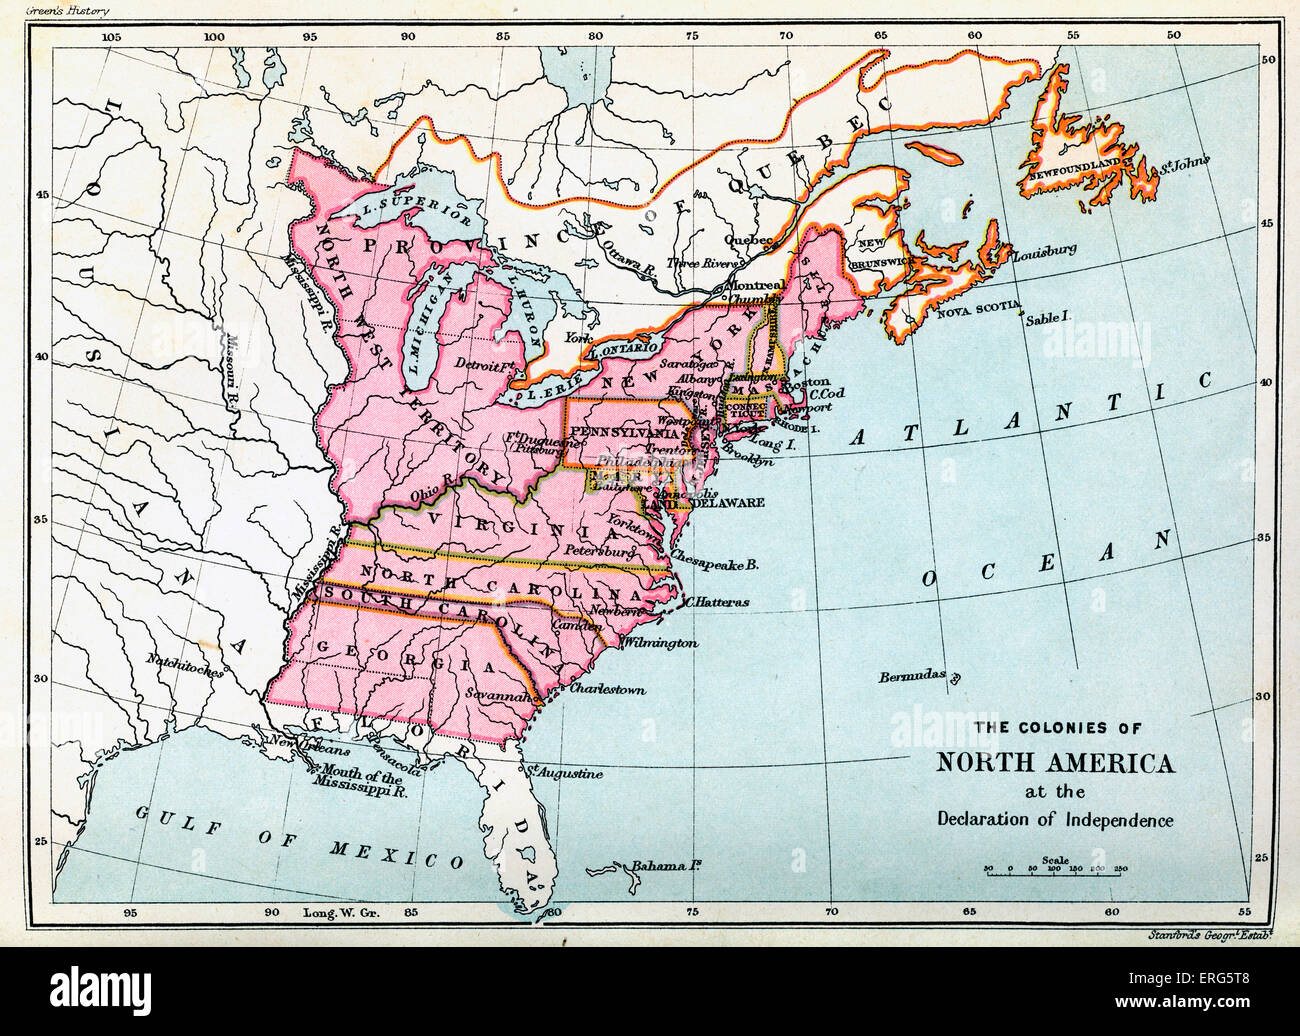 Colonies Of North America In At The United States